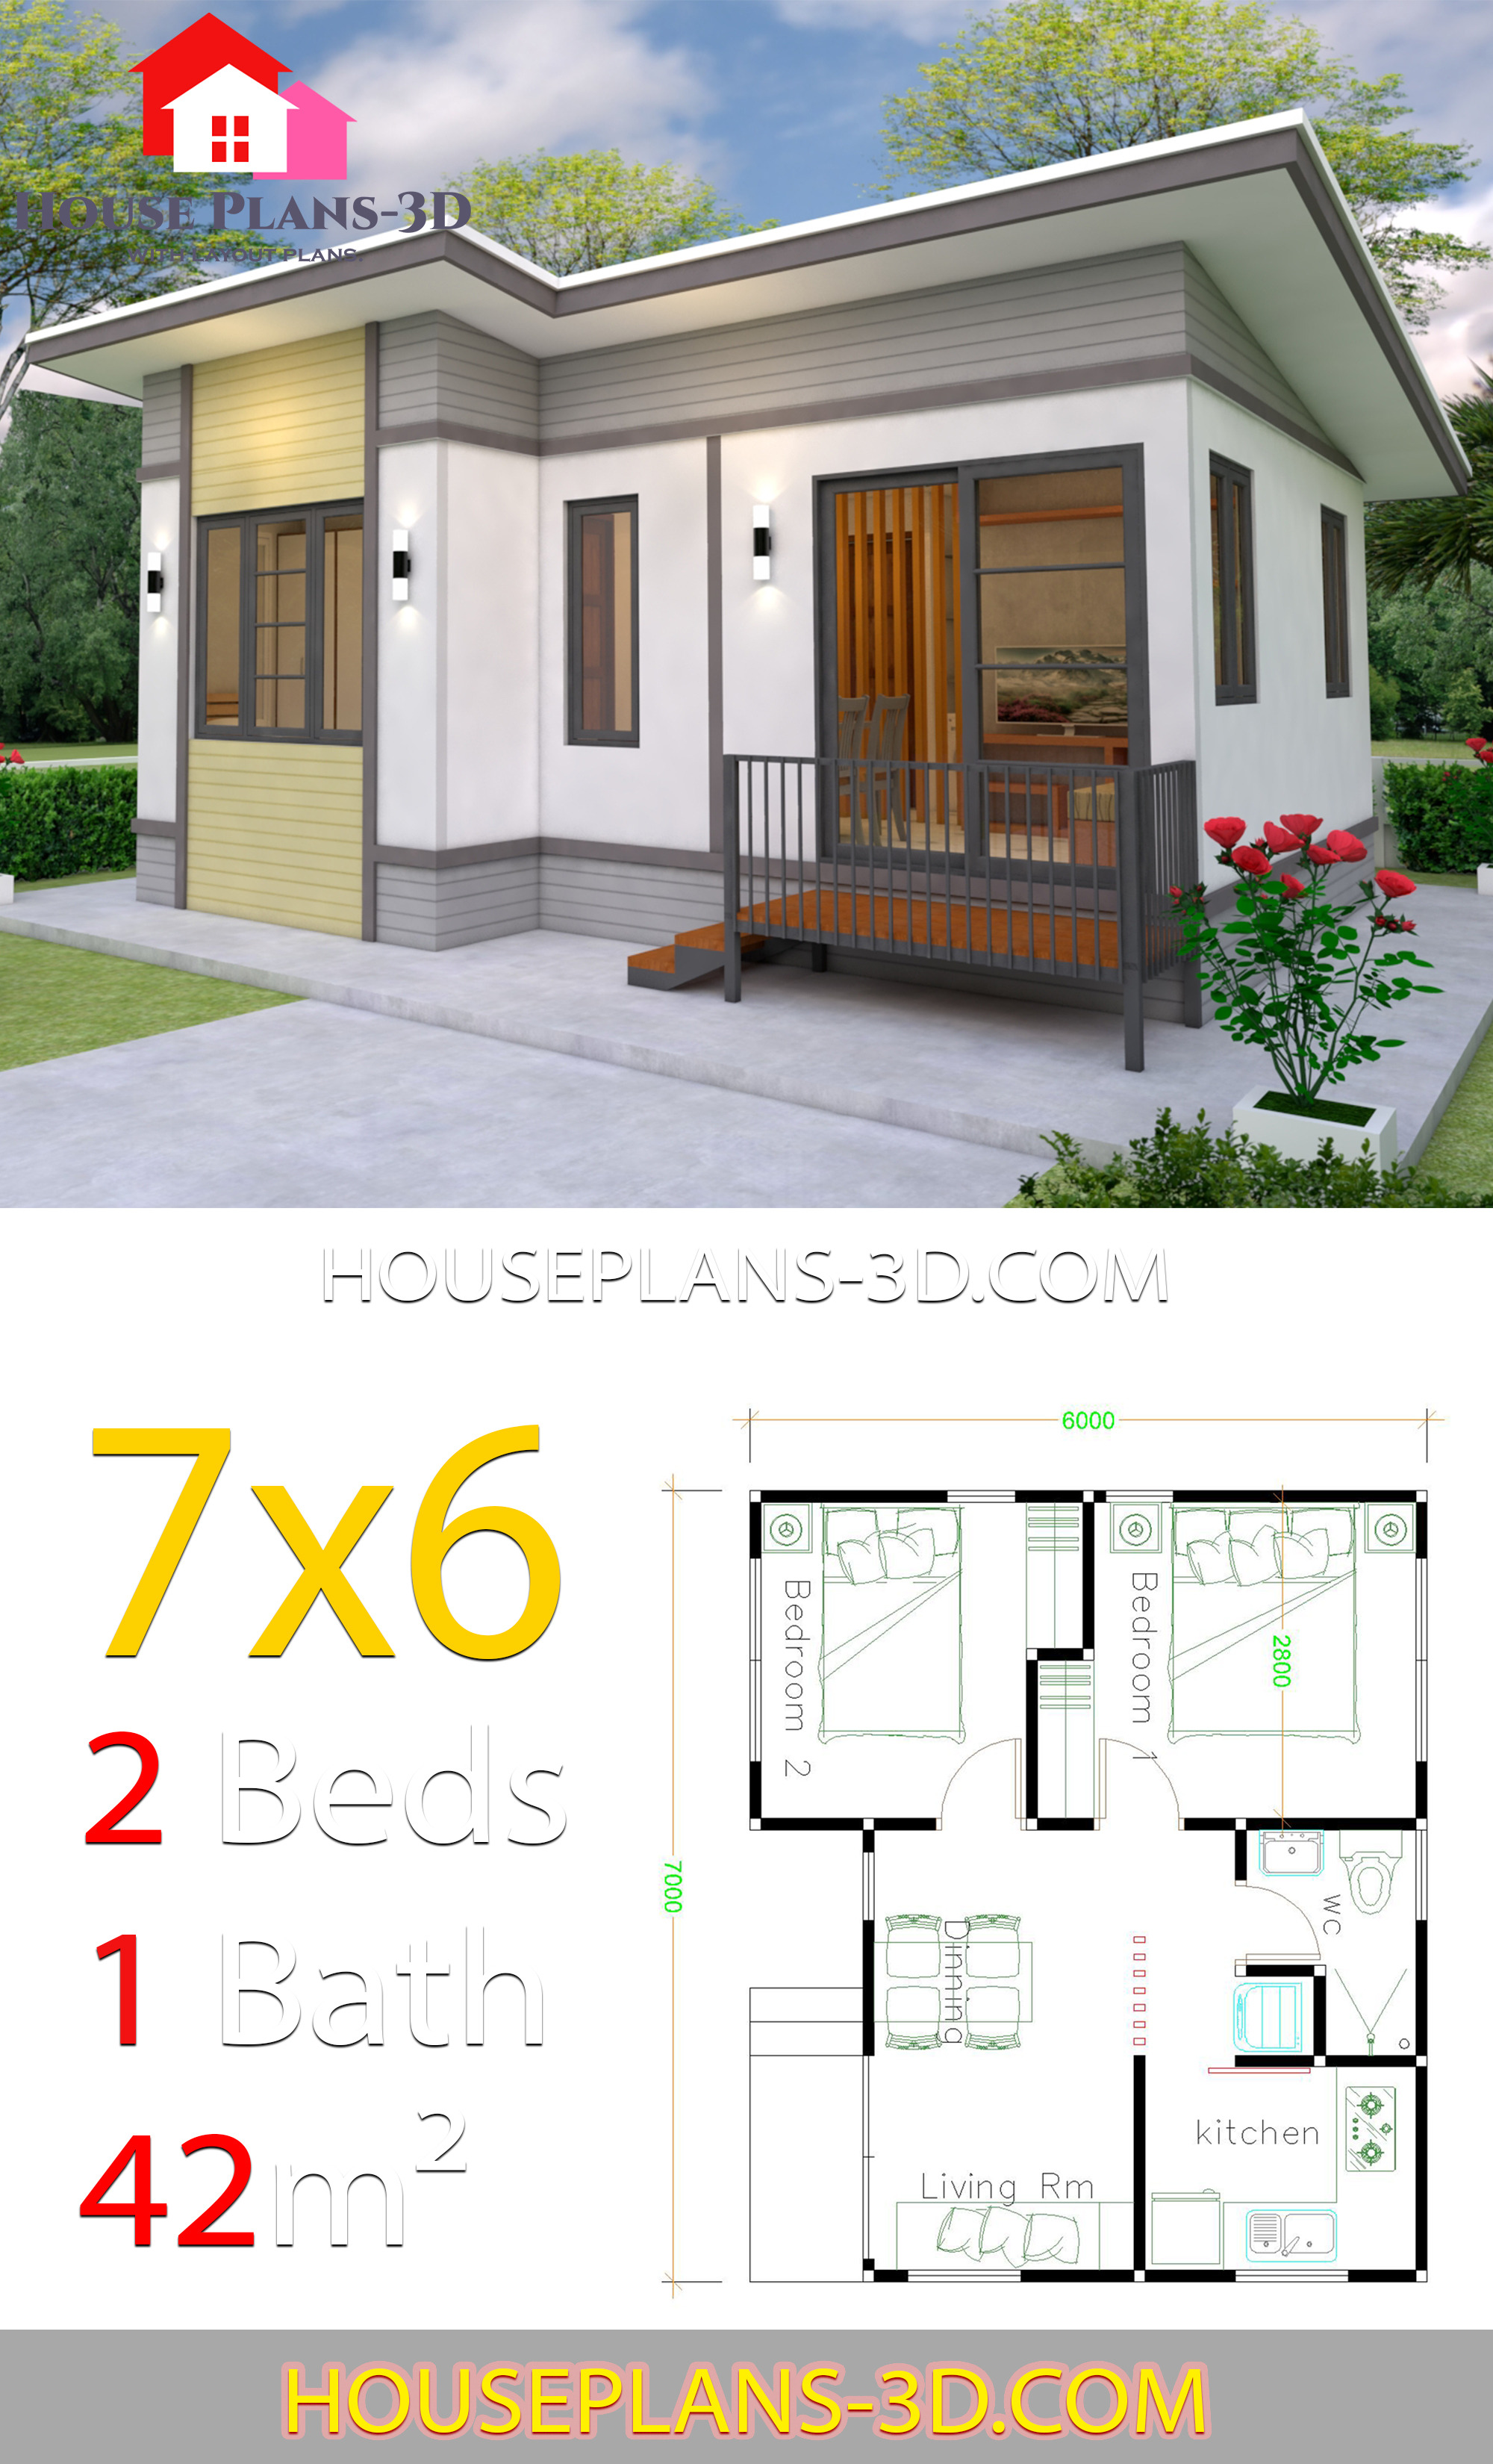 Self Design House Plans Awesome Small House Plans 7x6 with 2 Bedrooms House Plans 3d